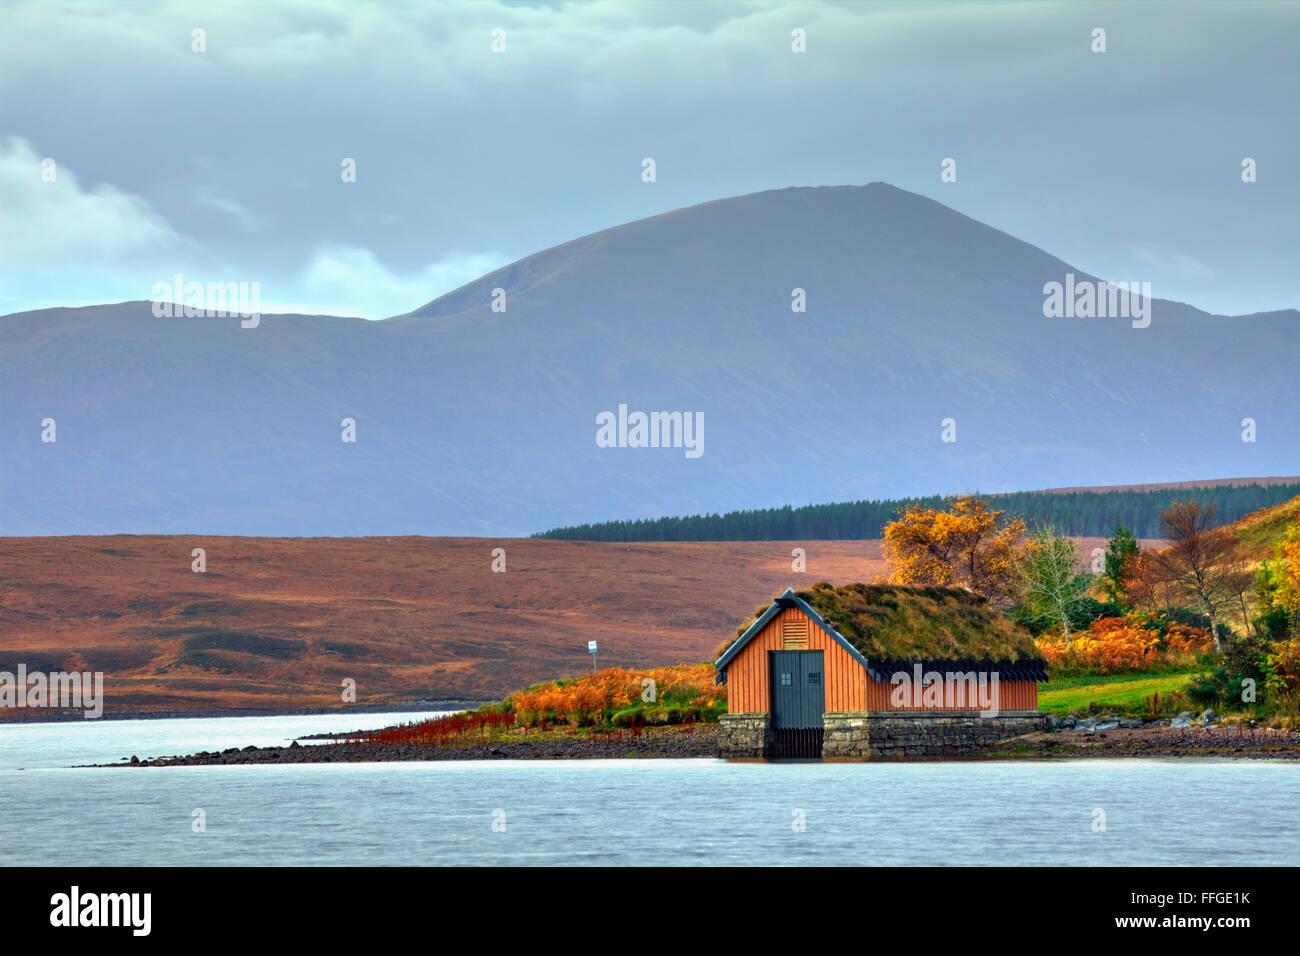 The boathouse on Loch Loyal in Northern Scotland, with Ben Klibreck in the distance. - Stock Image